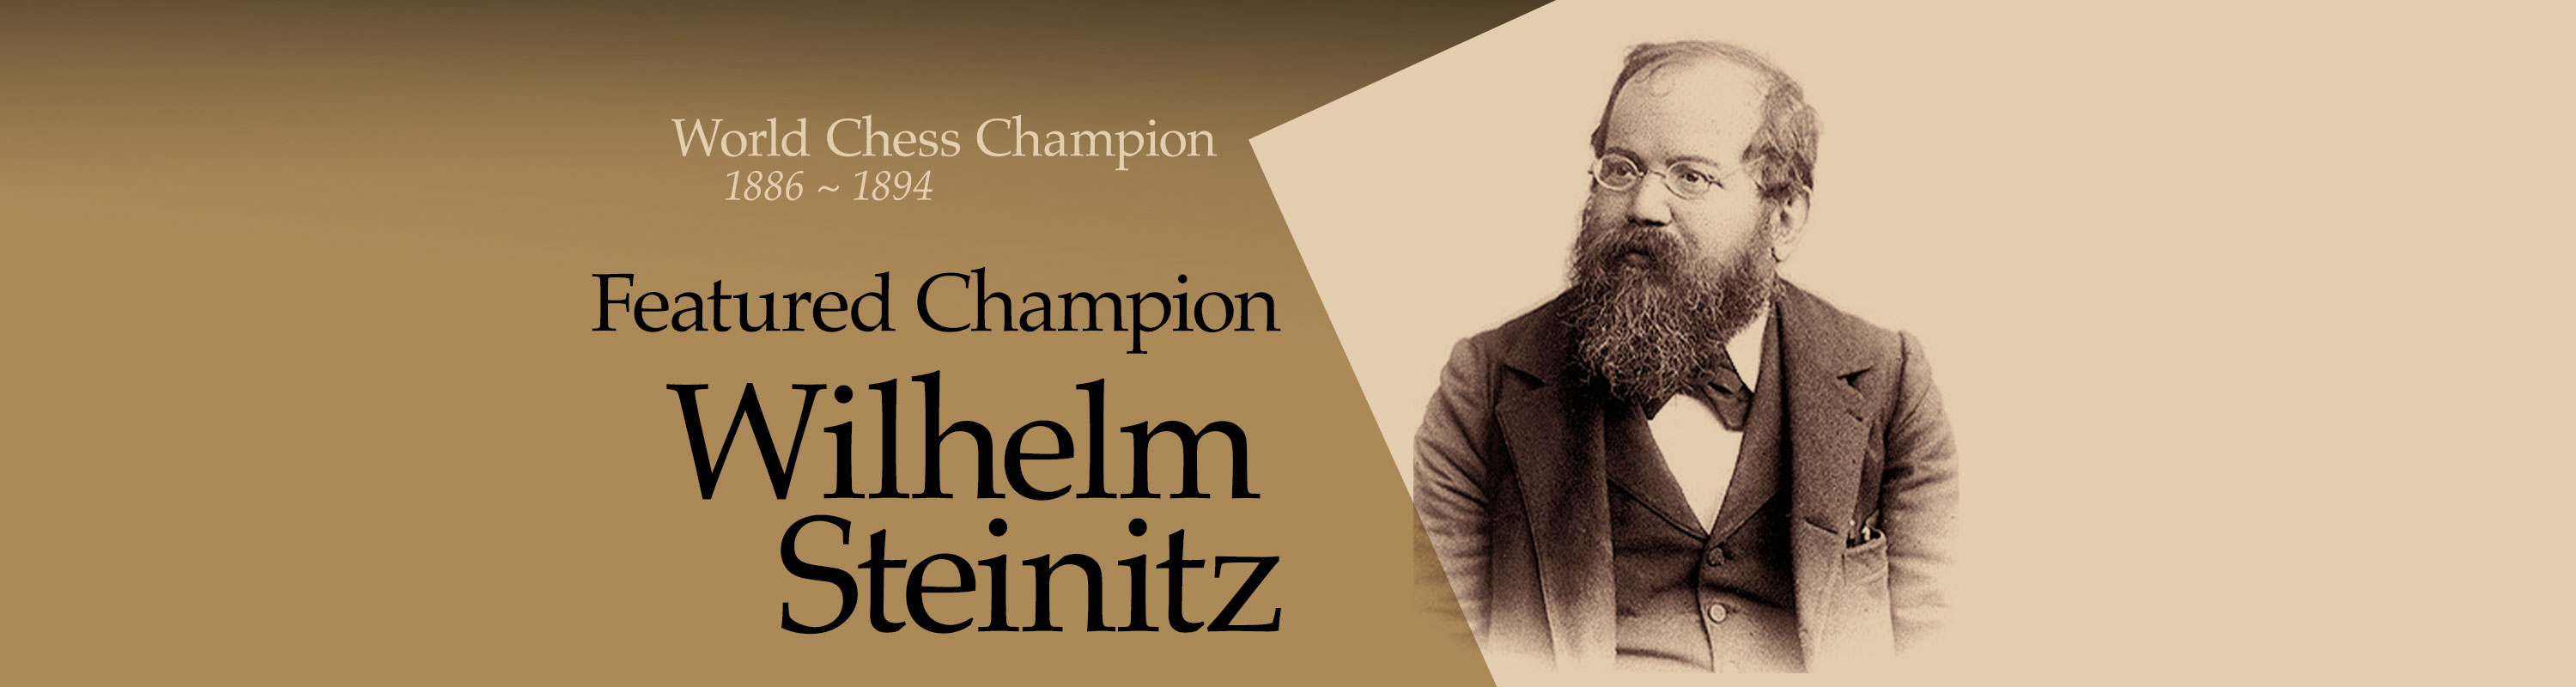 Featured Champion: Wilhelm Steinitz